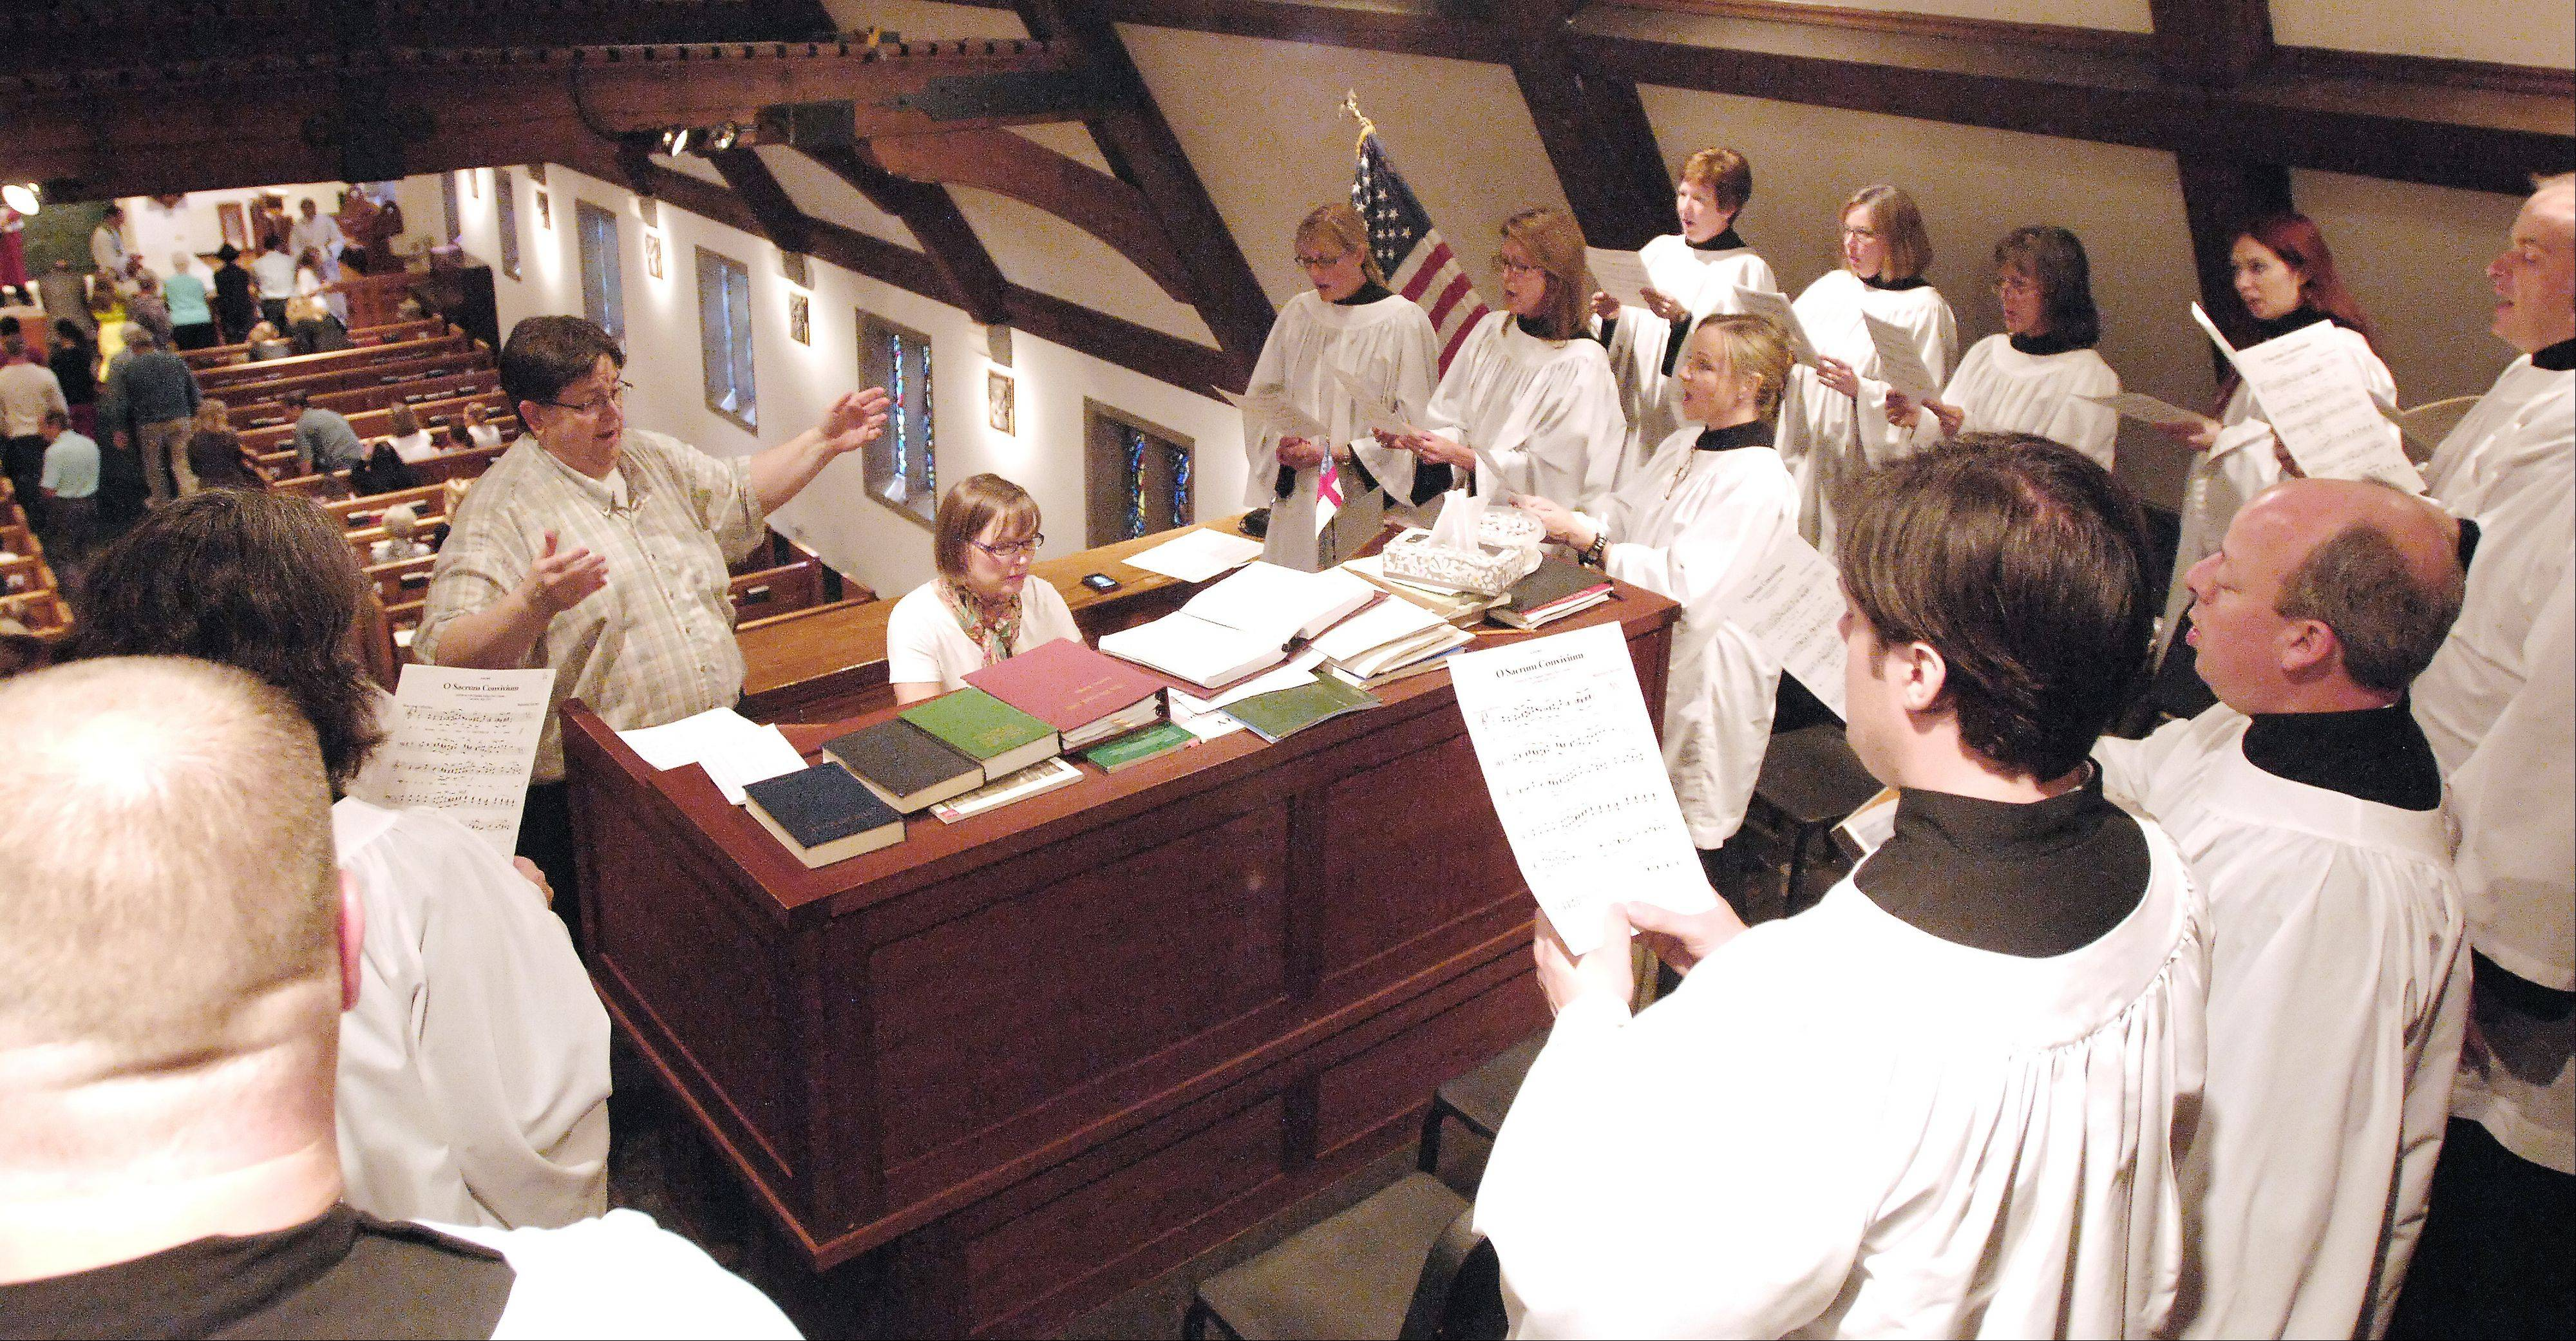 Organist and choirmaster Charles Snider leads the choir as he celebrates his 25th anniversary at St. Mark�s Episcopal Church in Glen Ellyn.